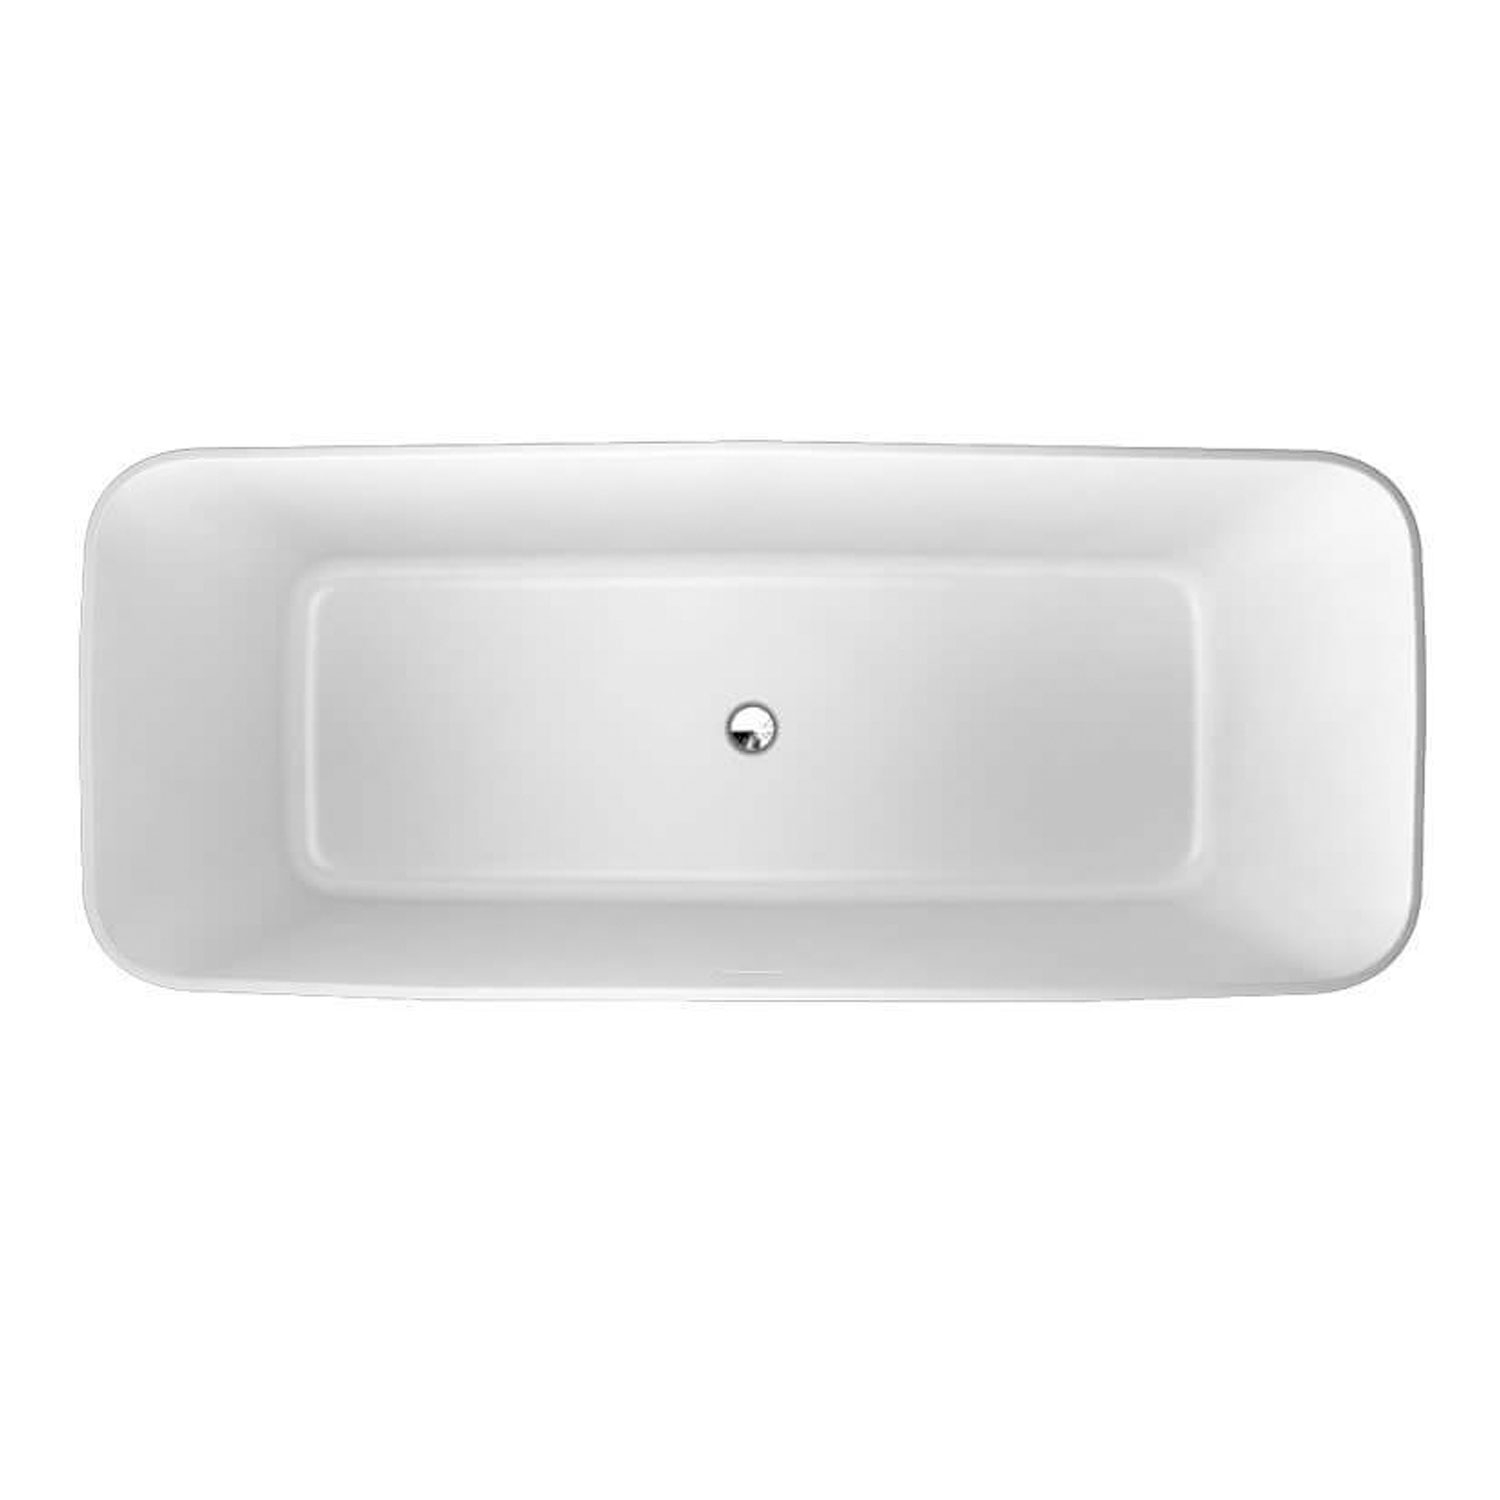 Clearwater Palermo Grande Freestanding Bath 1790mm x 750mm - Clear Stone-1